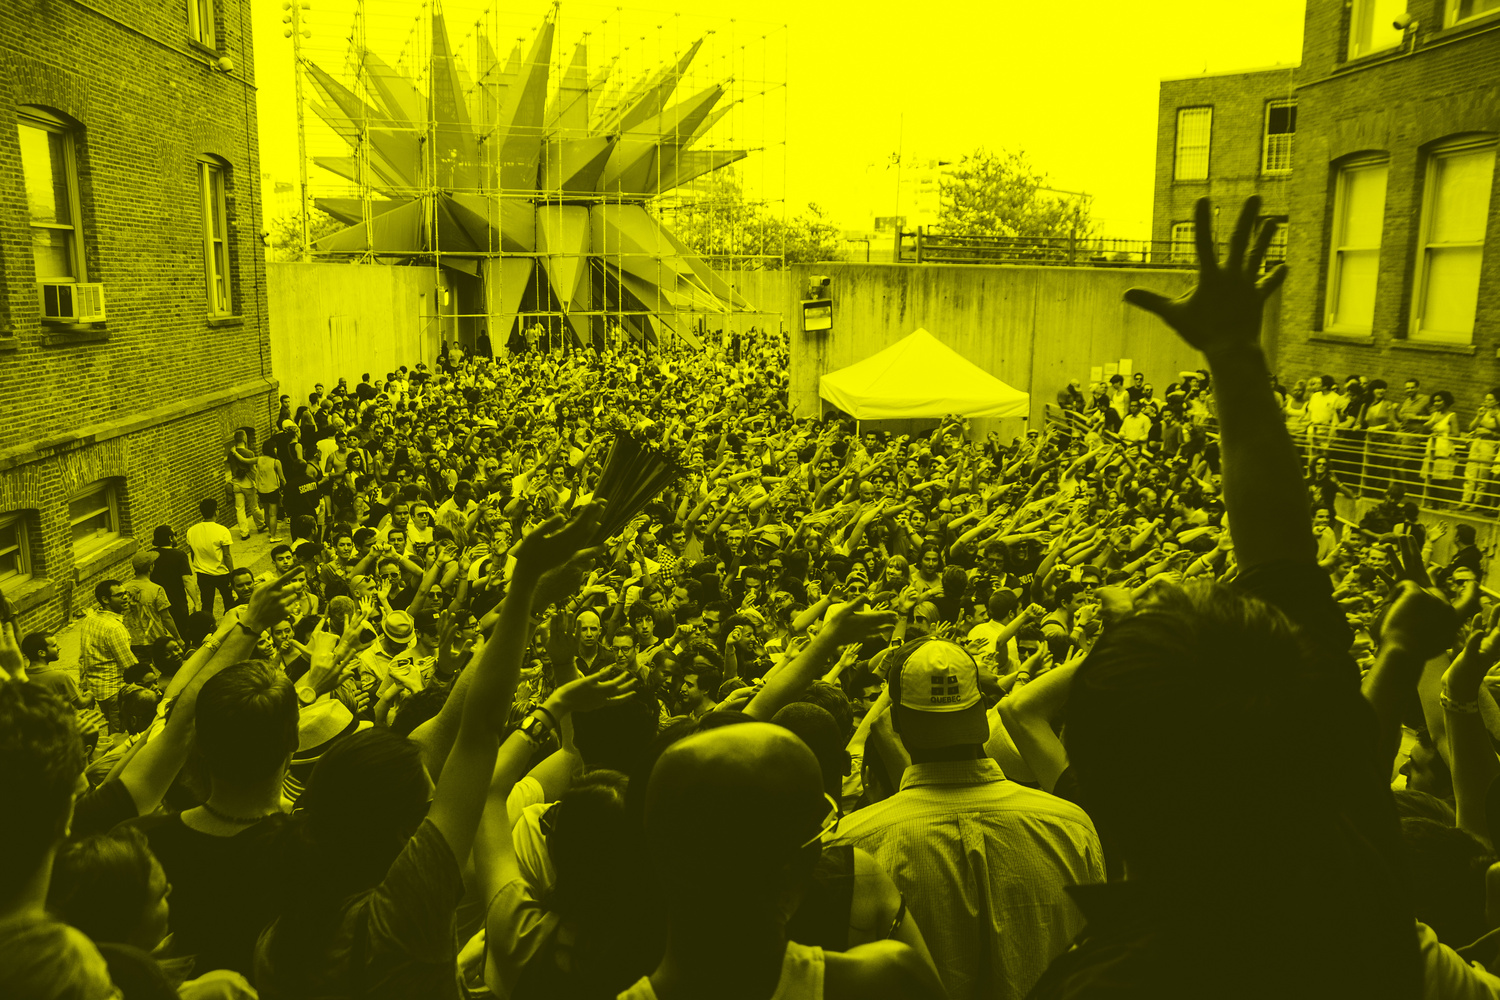 Audience at MoMA PS1's Warm Up 2012. Image courtesy of MoMA PS1. Photo by Loren Wohl.